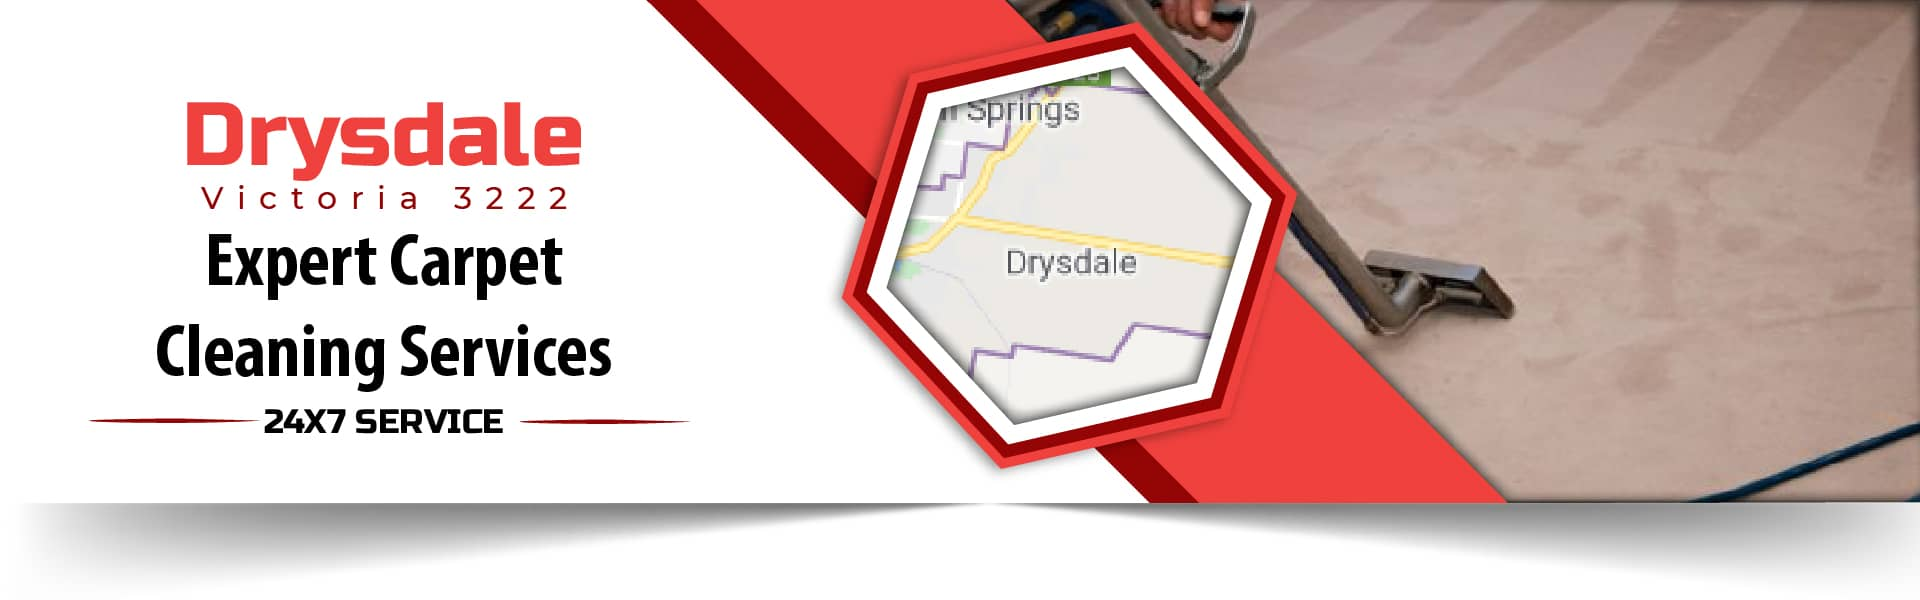 Carpet Cleaning Drysdale